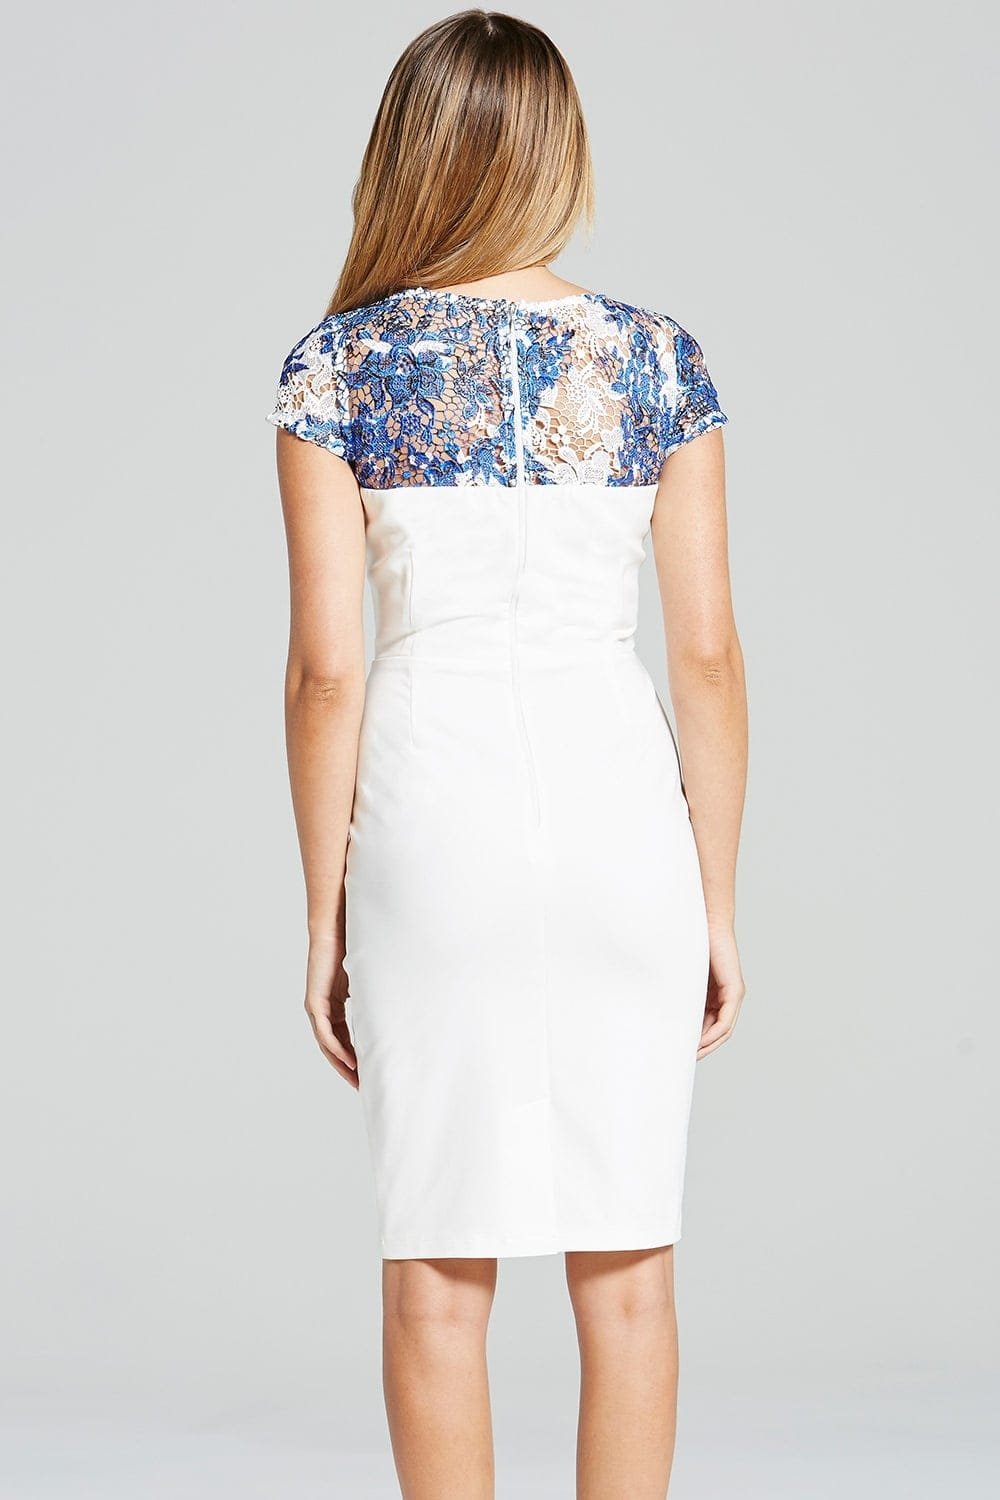 Blue And White Lace Dresses